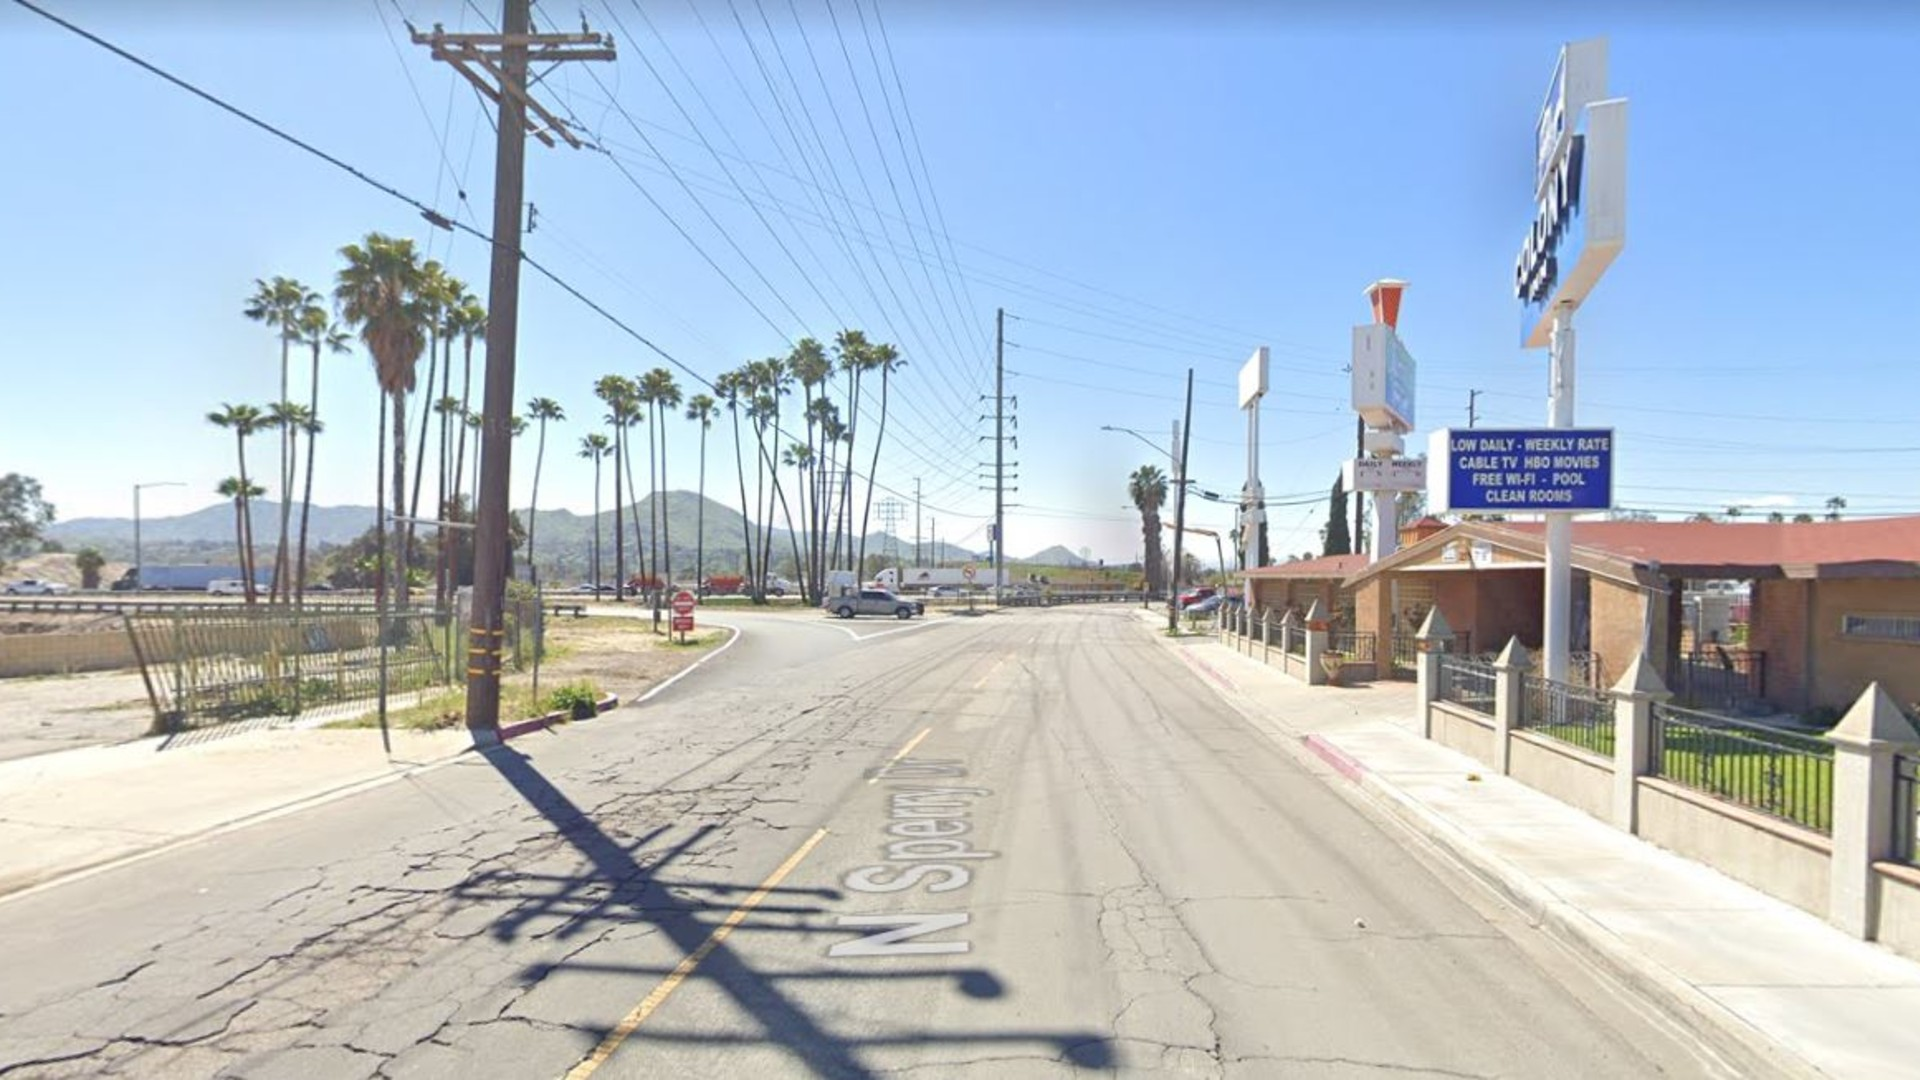 The 300 block of North Sperry Drive in Colton, as pictured in a Google Street View image.